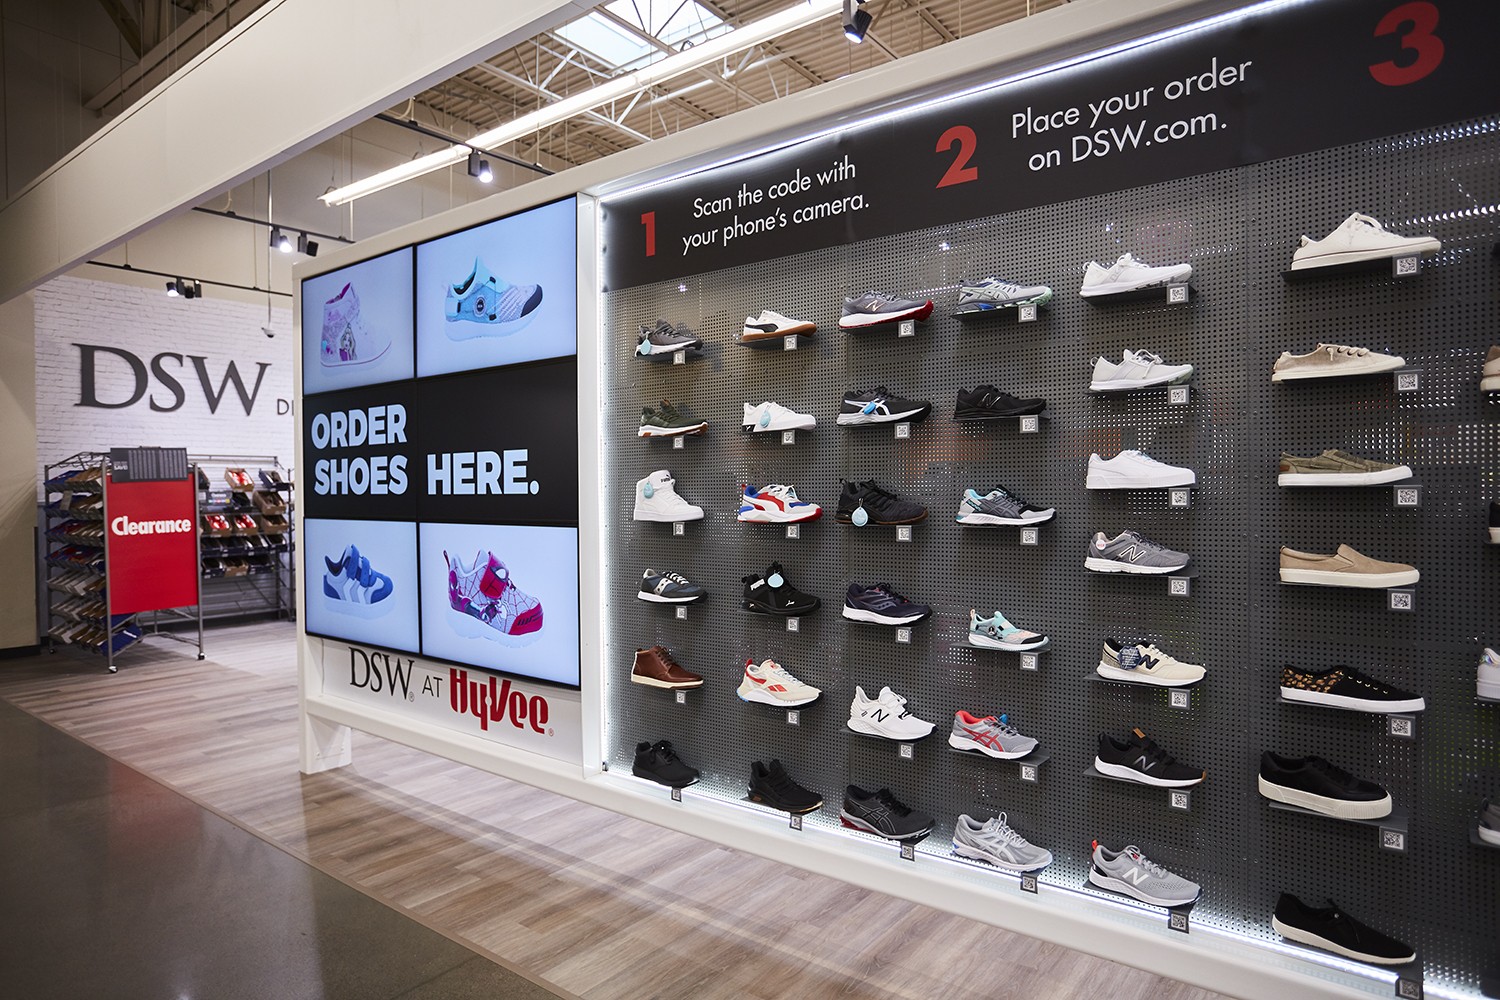 Shoppers Will Soon Be Able to Buy DSW Shoes in Hy-Vee Supermarkets